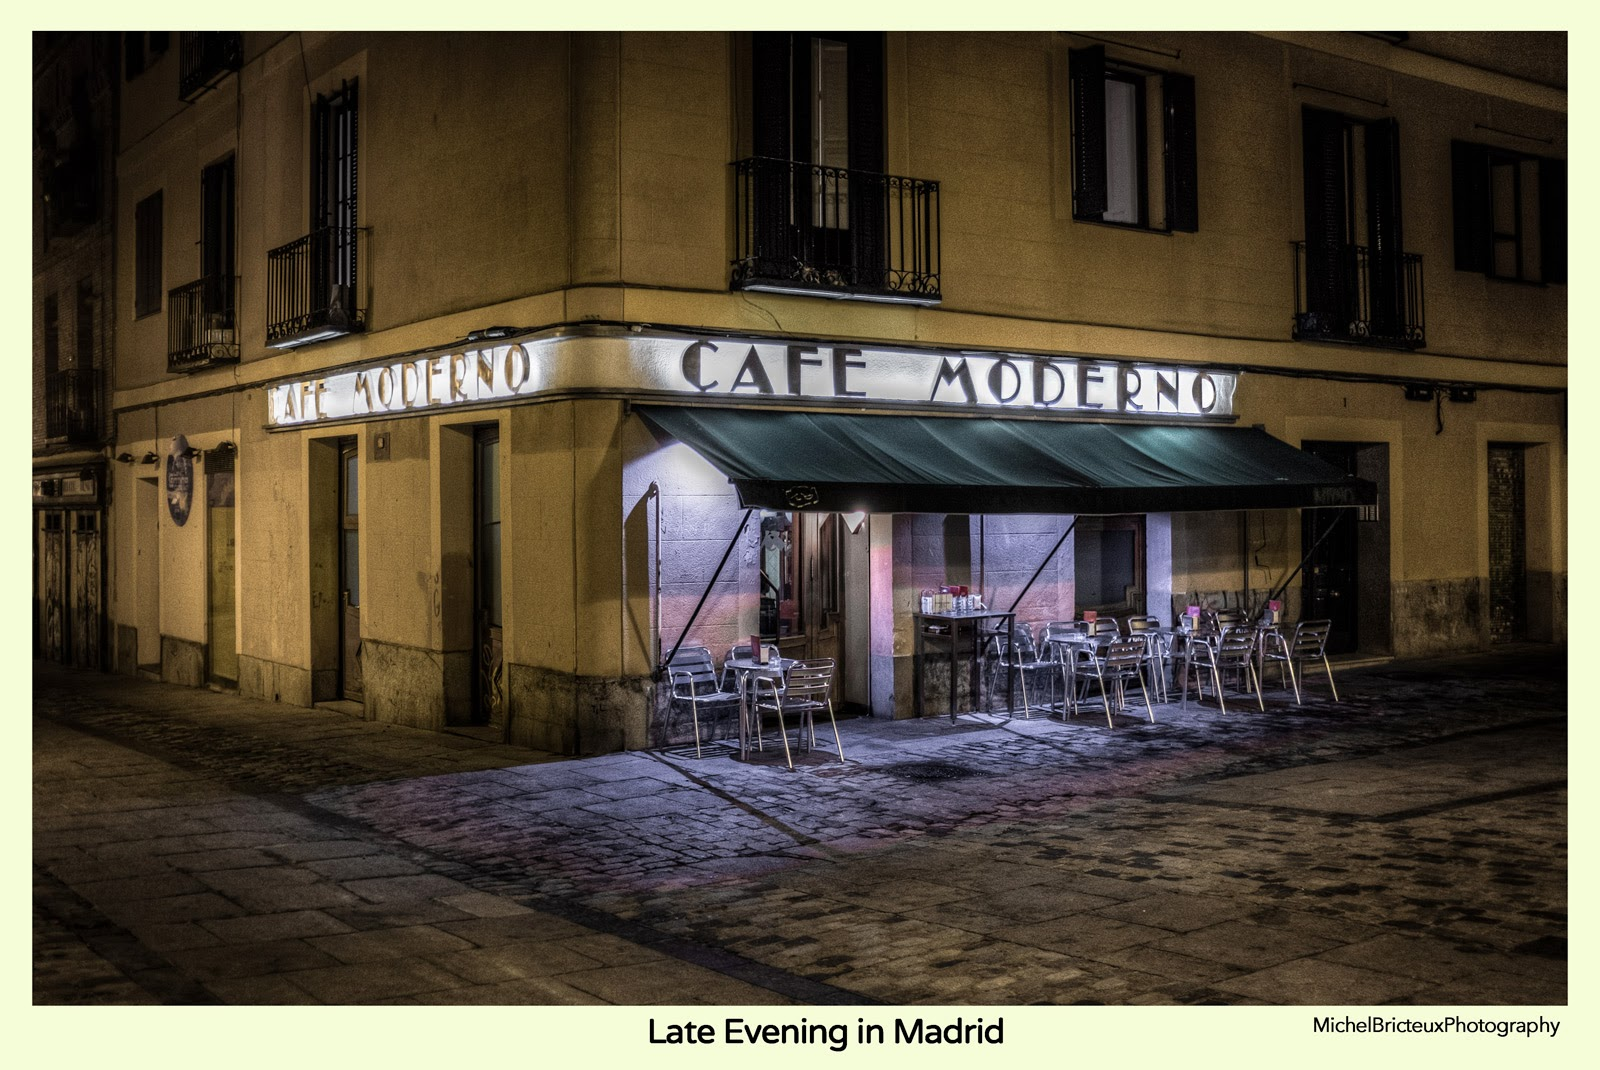 Cafe Moderno, Madrid